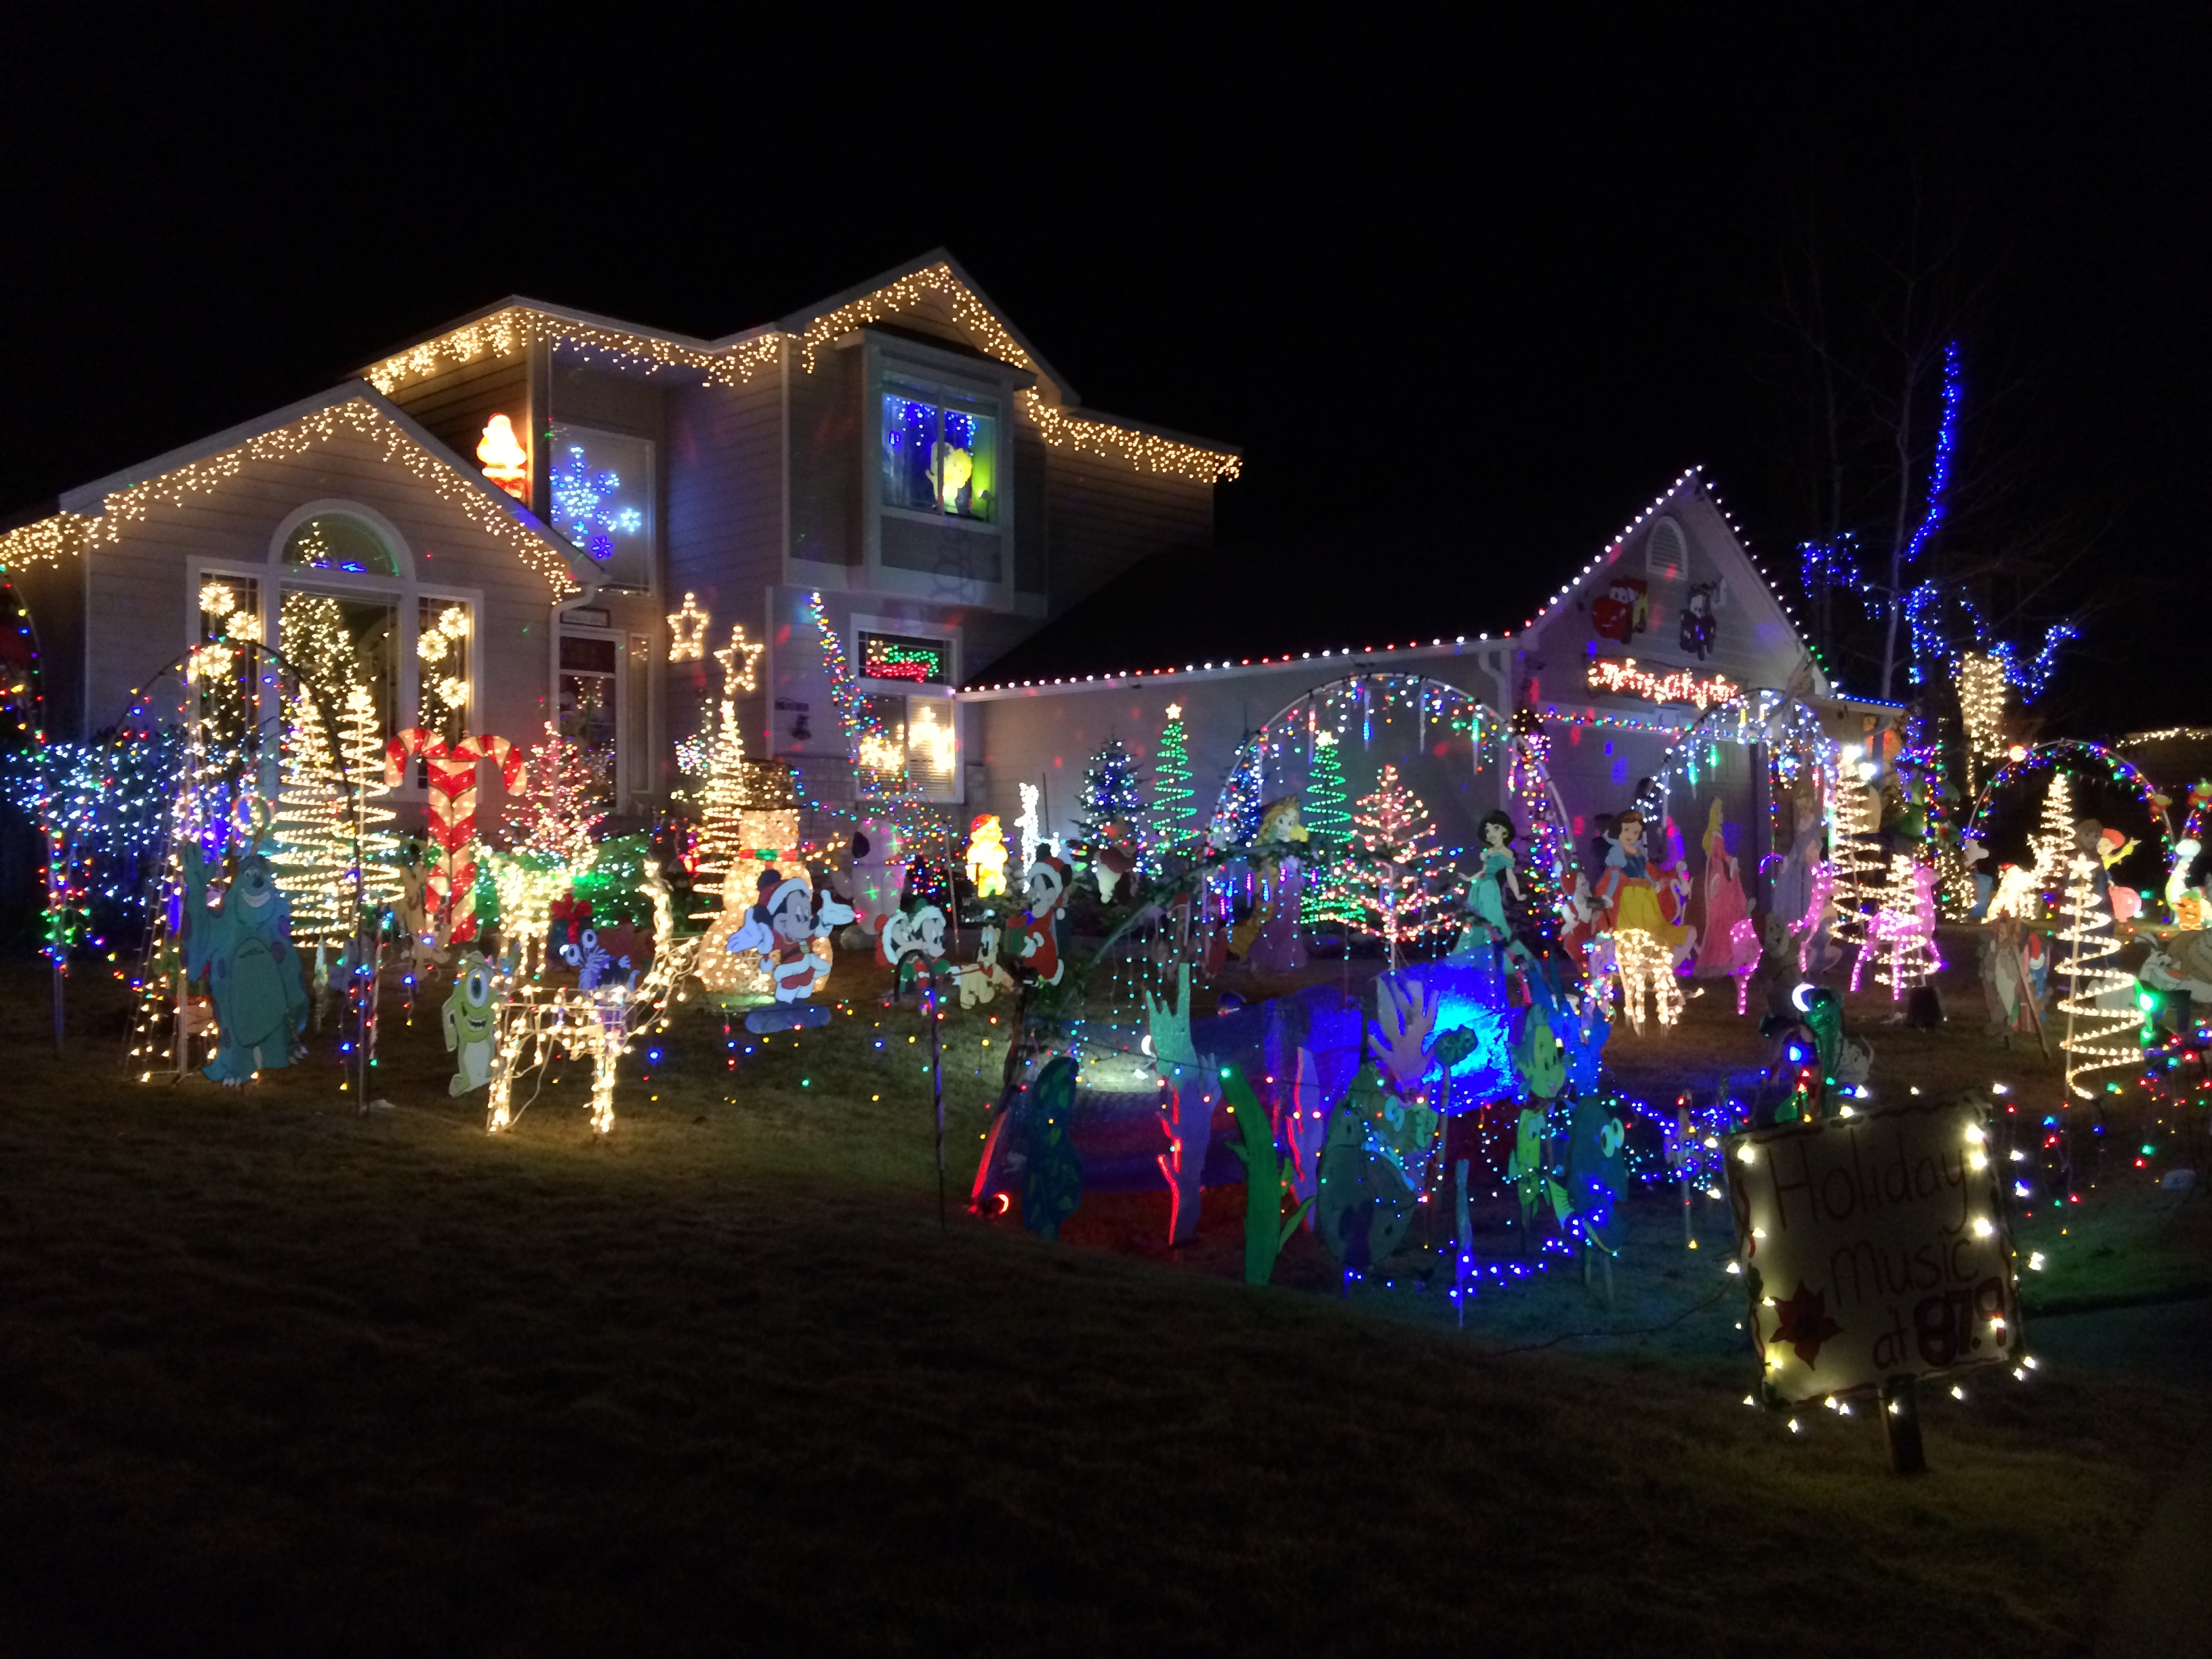 A look at the holiday Disney-themed  house I visited on Christmas Eve.